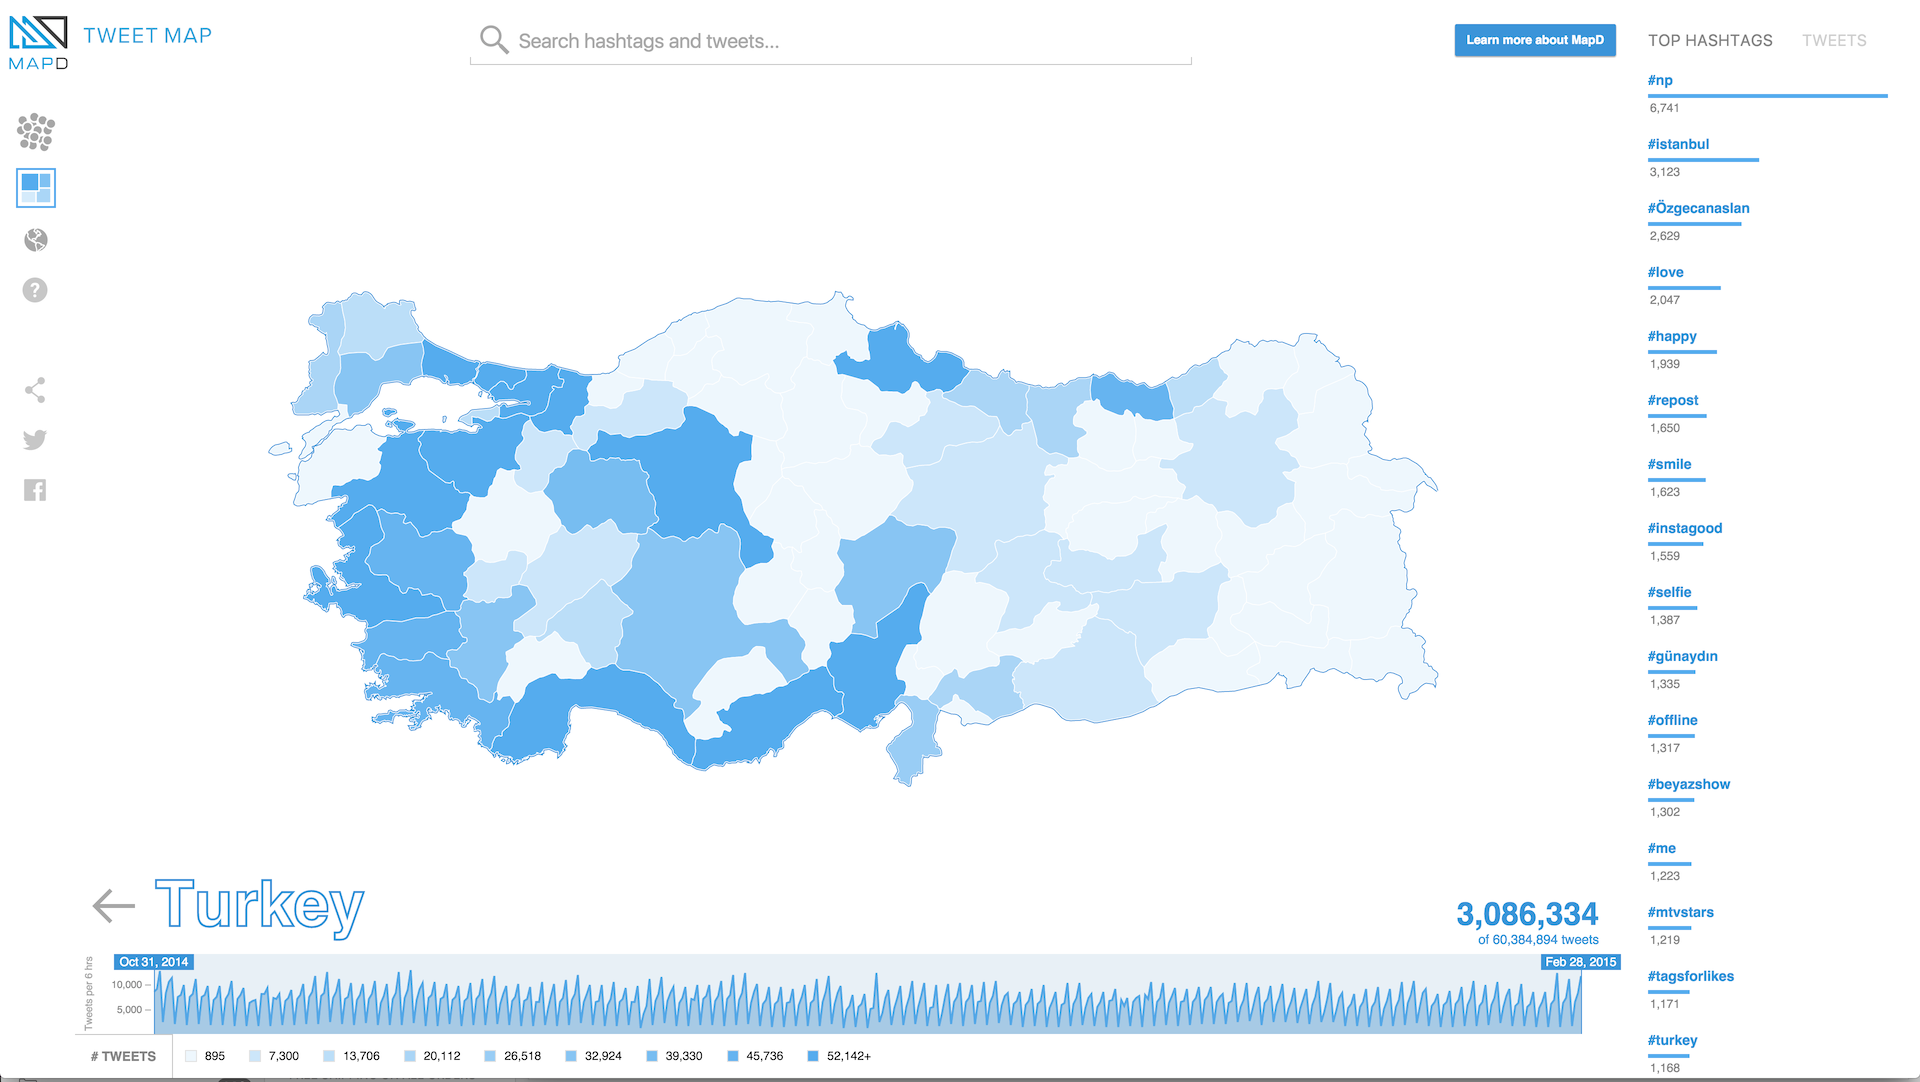 # Tweets by Turkish Province